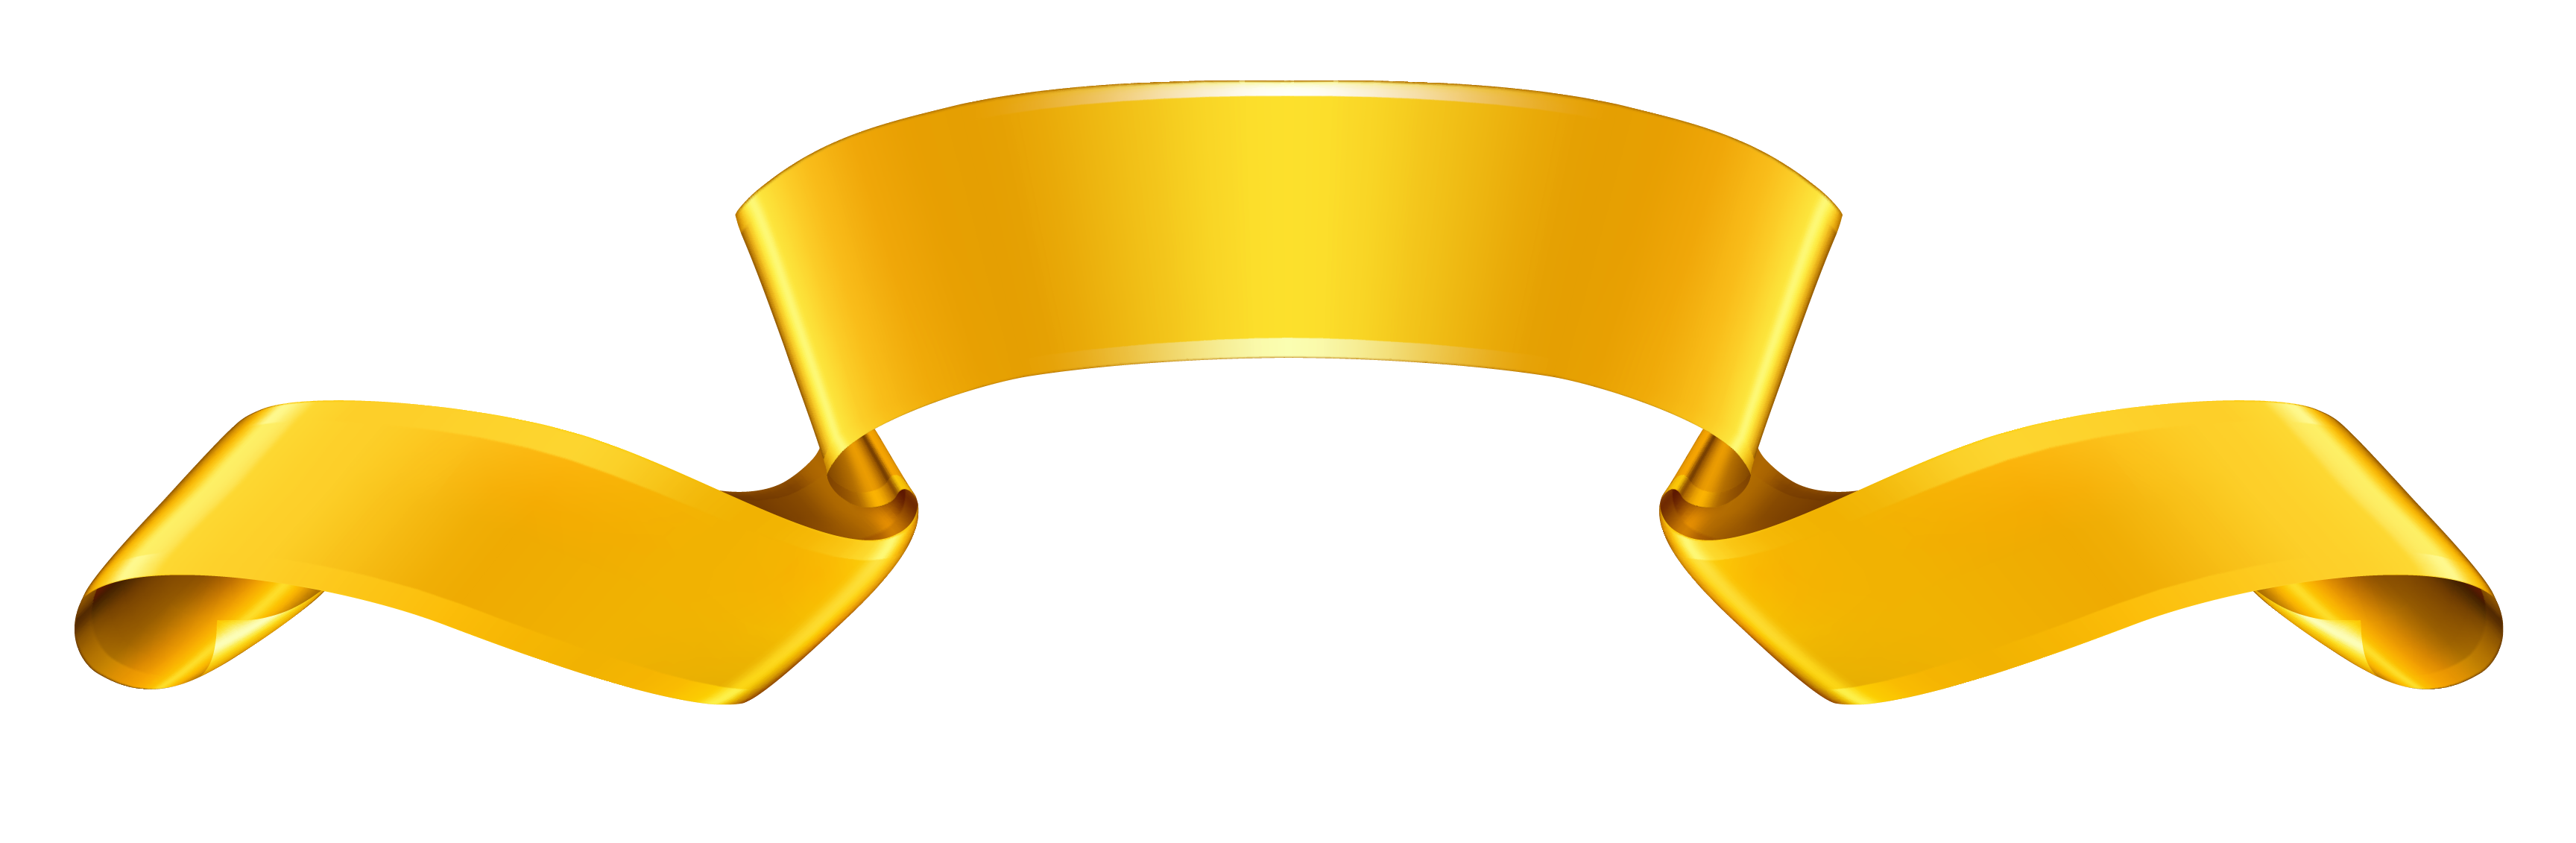 3456x1131 Gold Banner Png Clipartu200b Gallery Yopriceville